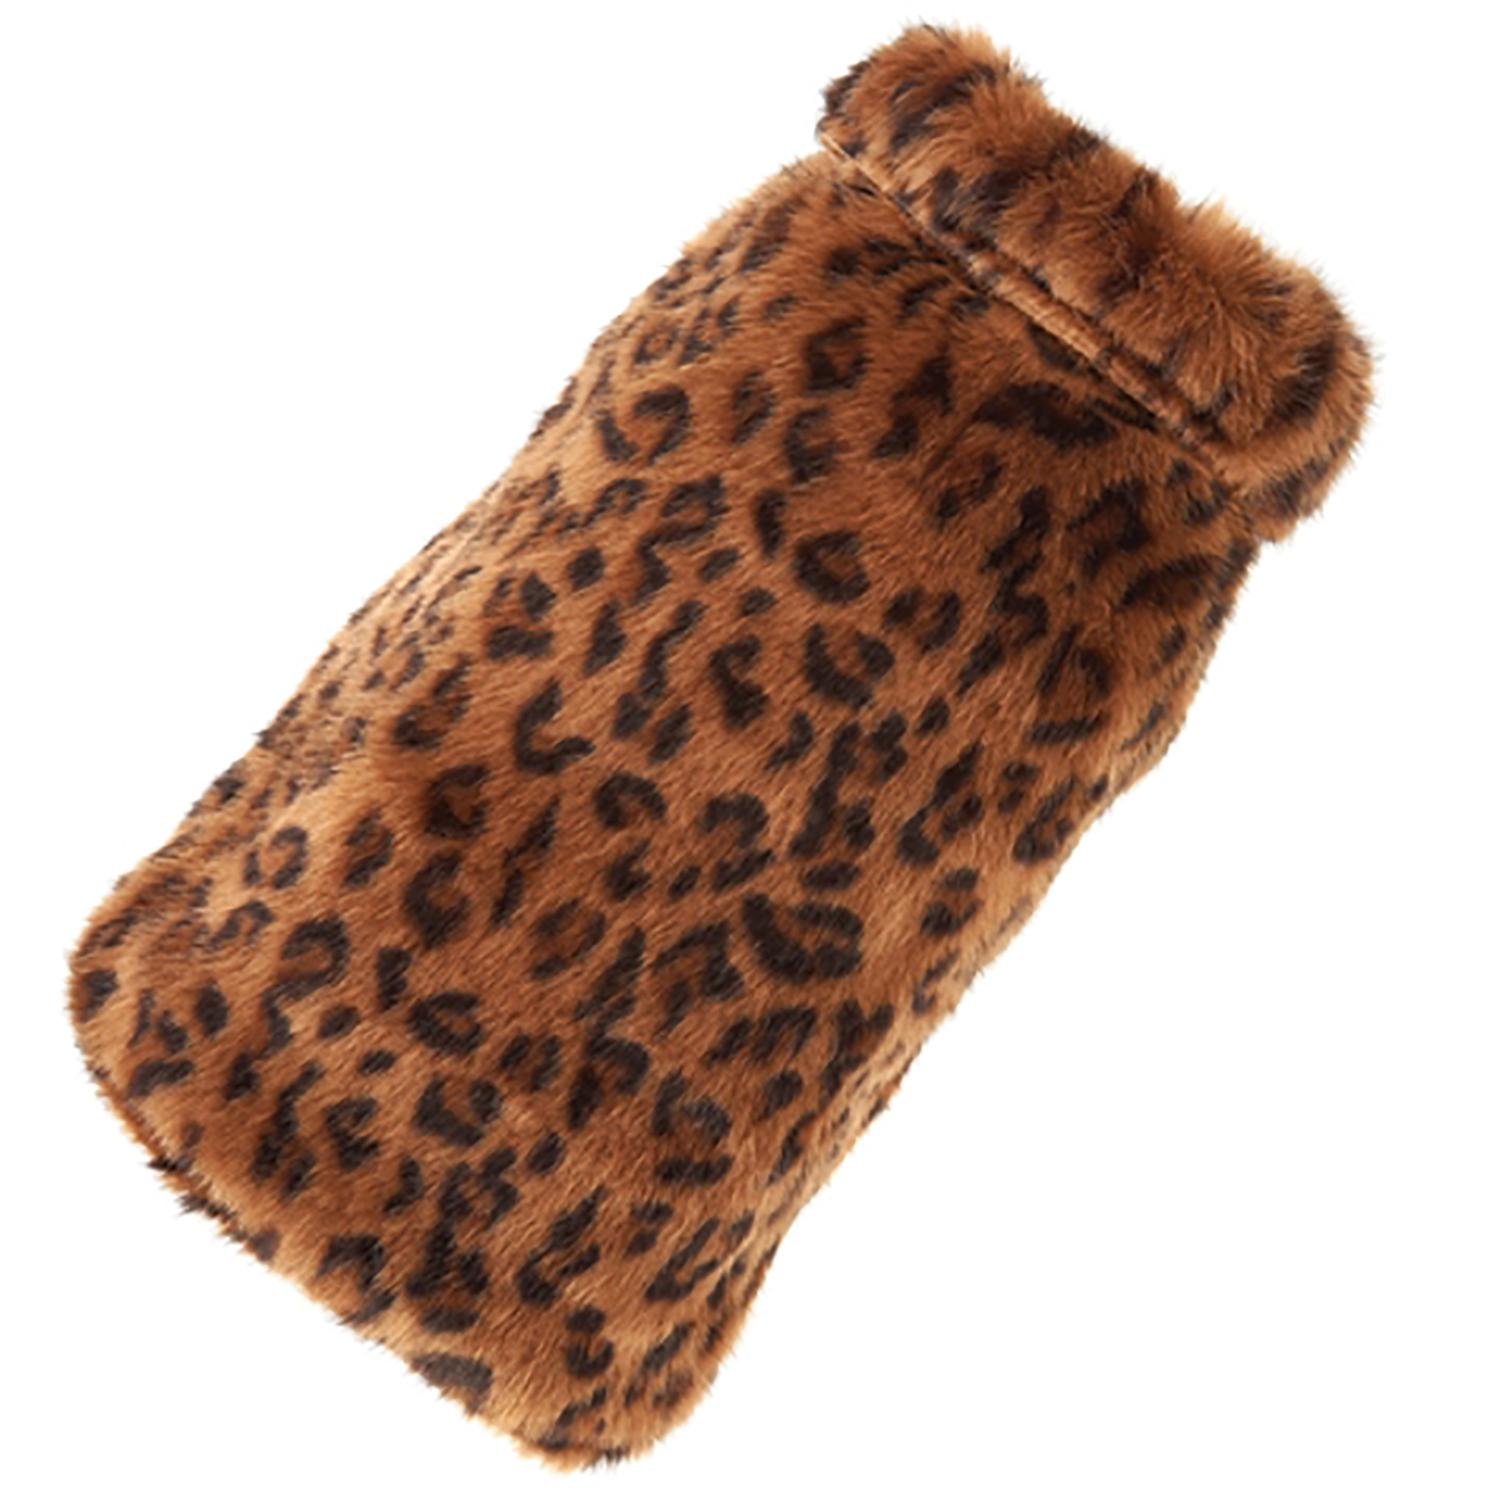 Leopard Fur Dog Coat by Up Country